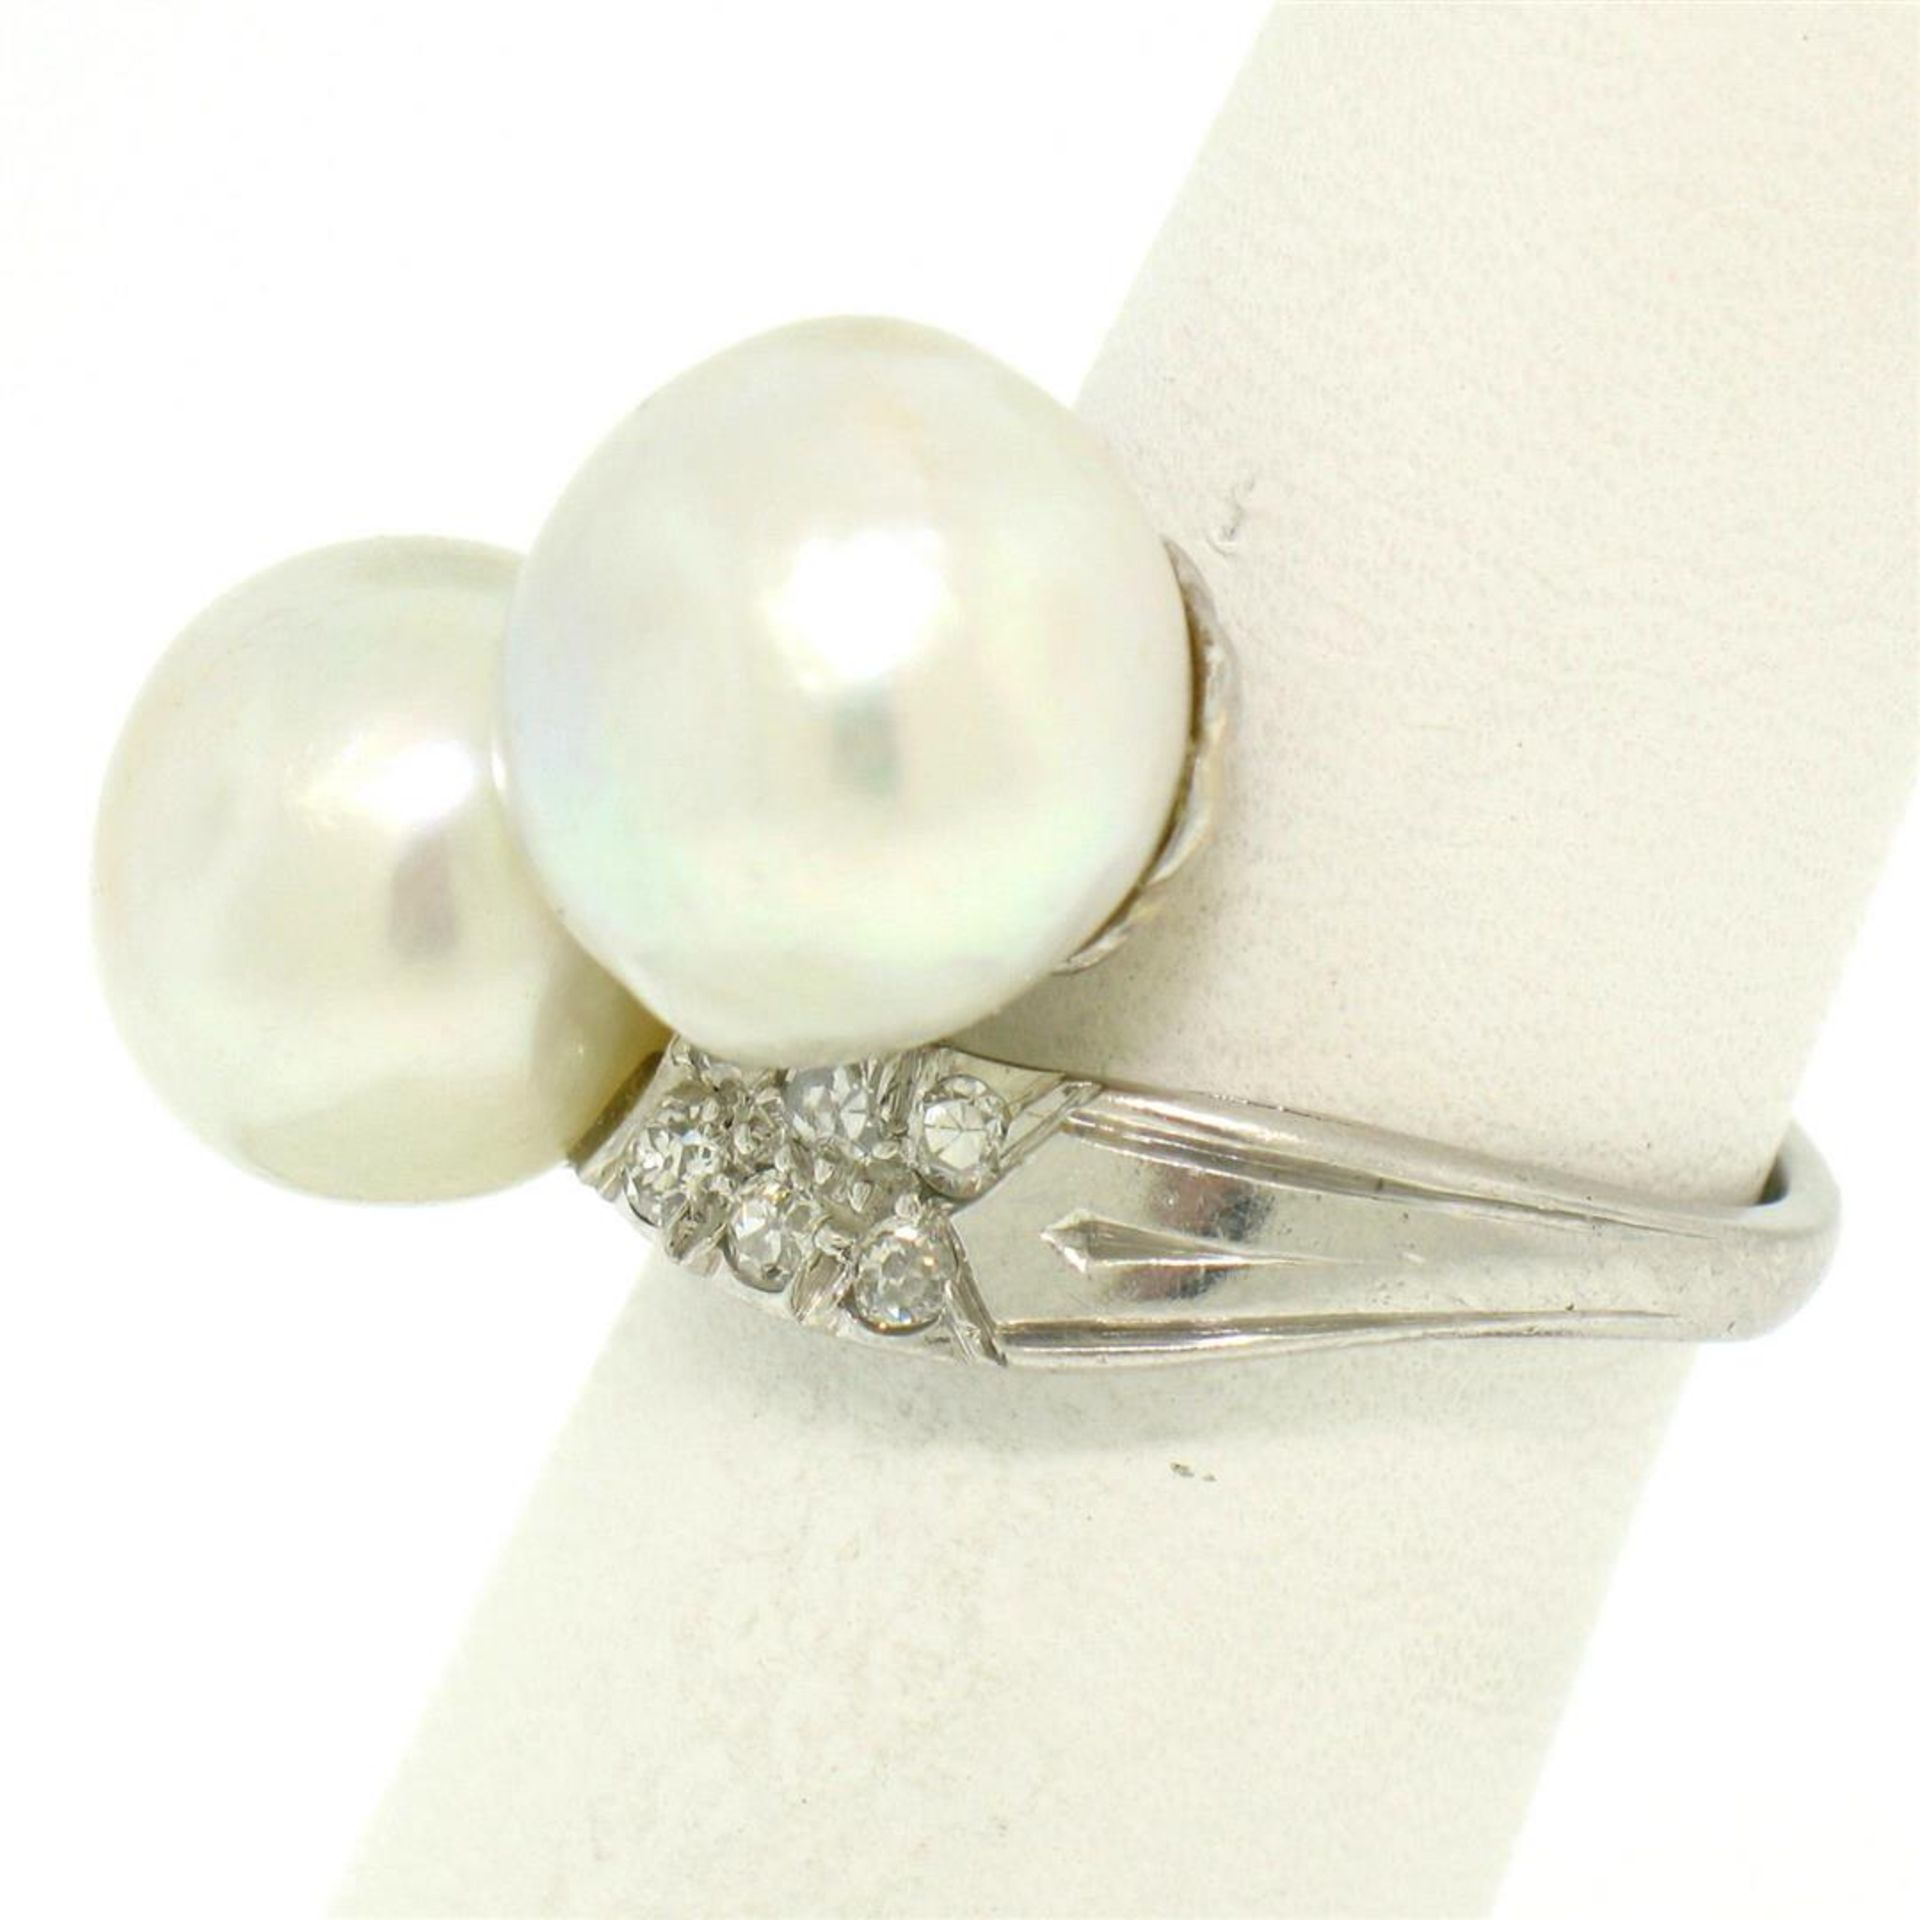 GIA Certified Solid Platinum Pearl & Diamond Bypass Cocktail Ring - Image 6 of 9